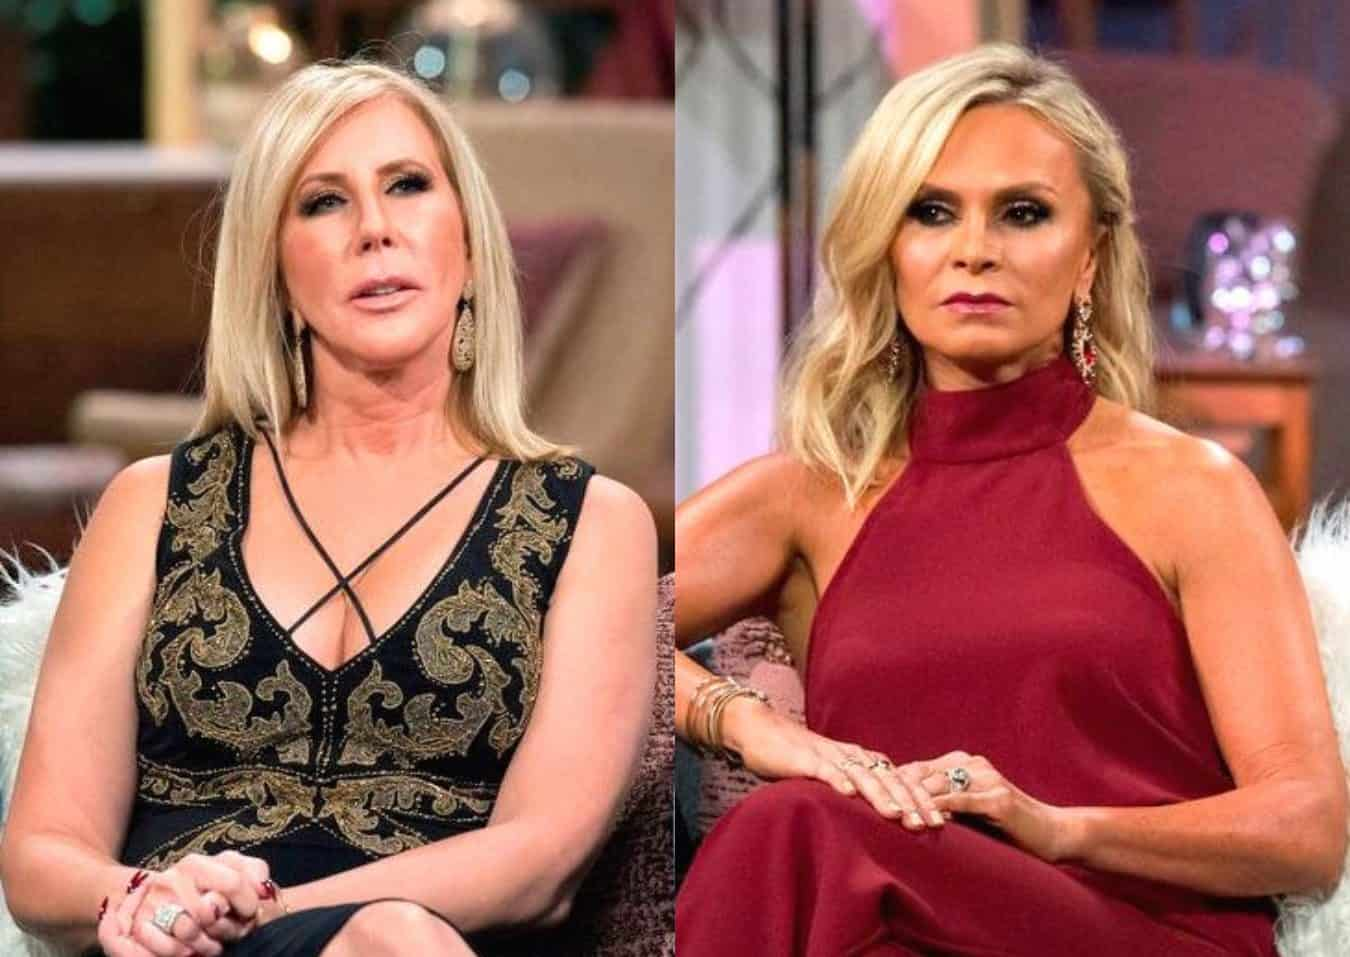 REPORT: Vicki Gunvalson and Tamra Judge are 'Banned' From Returning to Television Until Next Year After RHOC Departures, Find Out Why